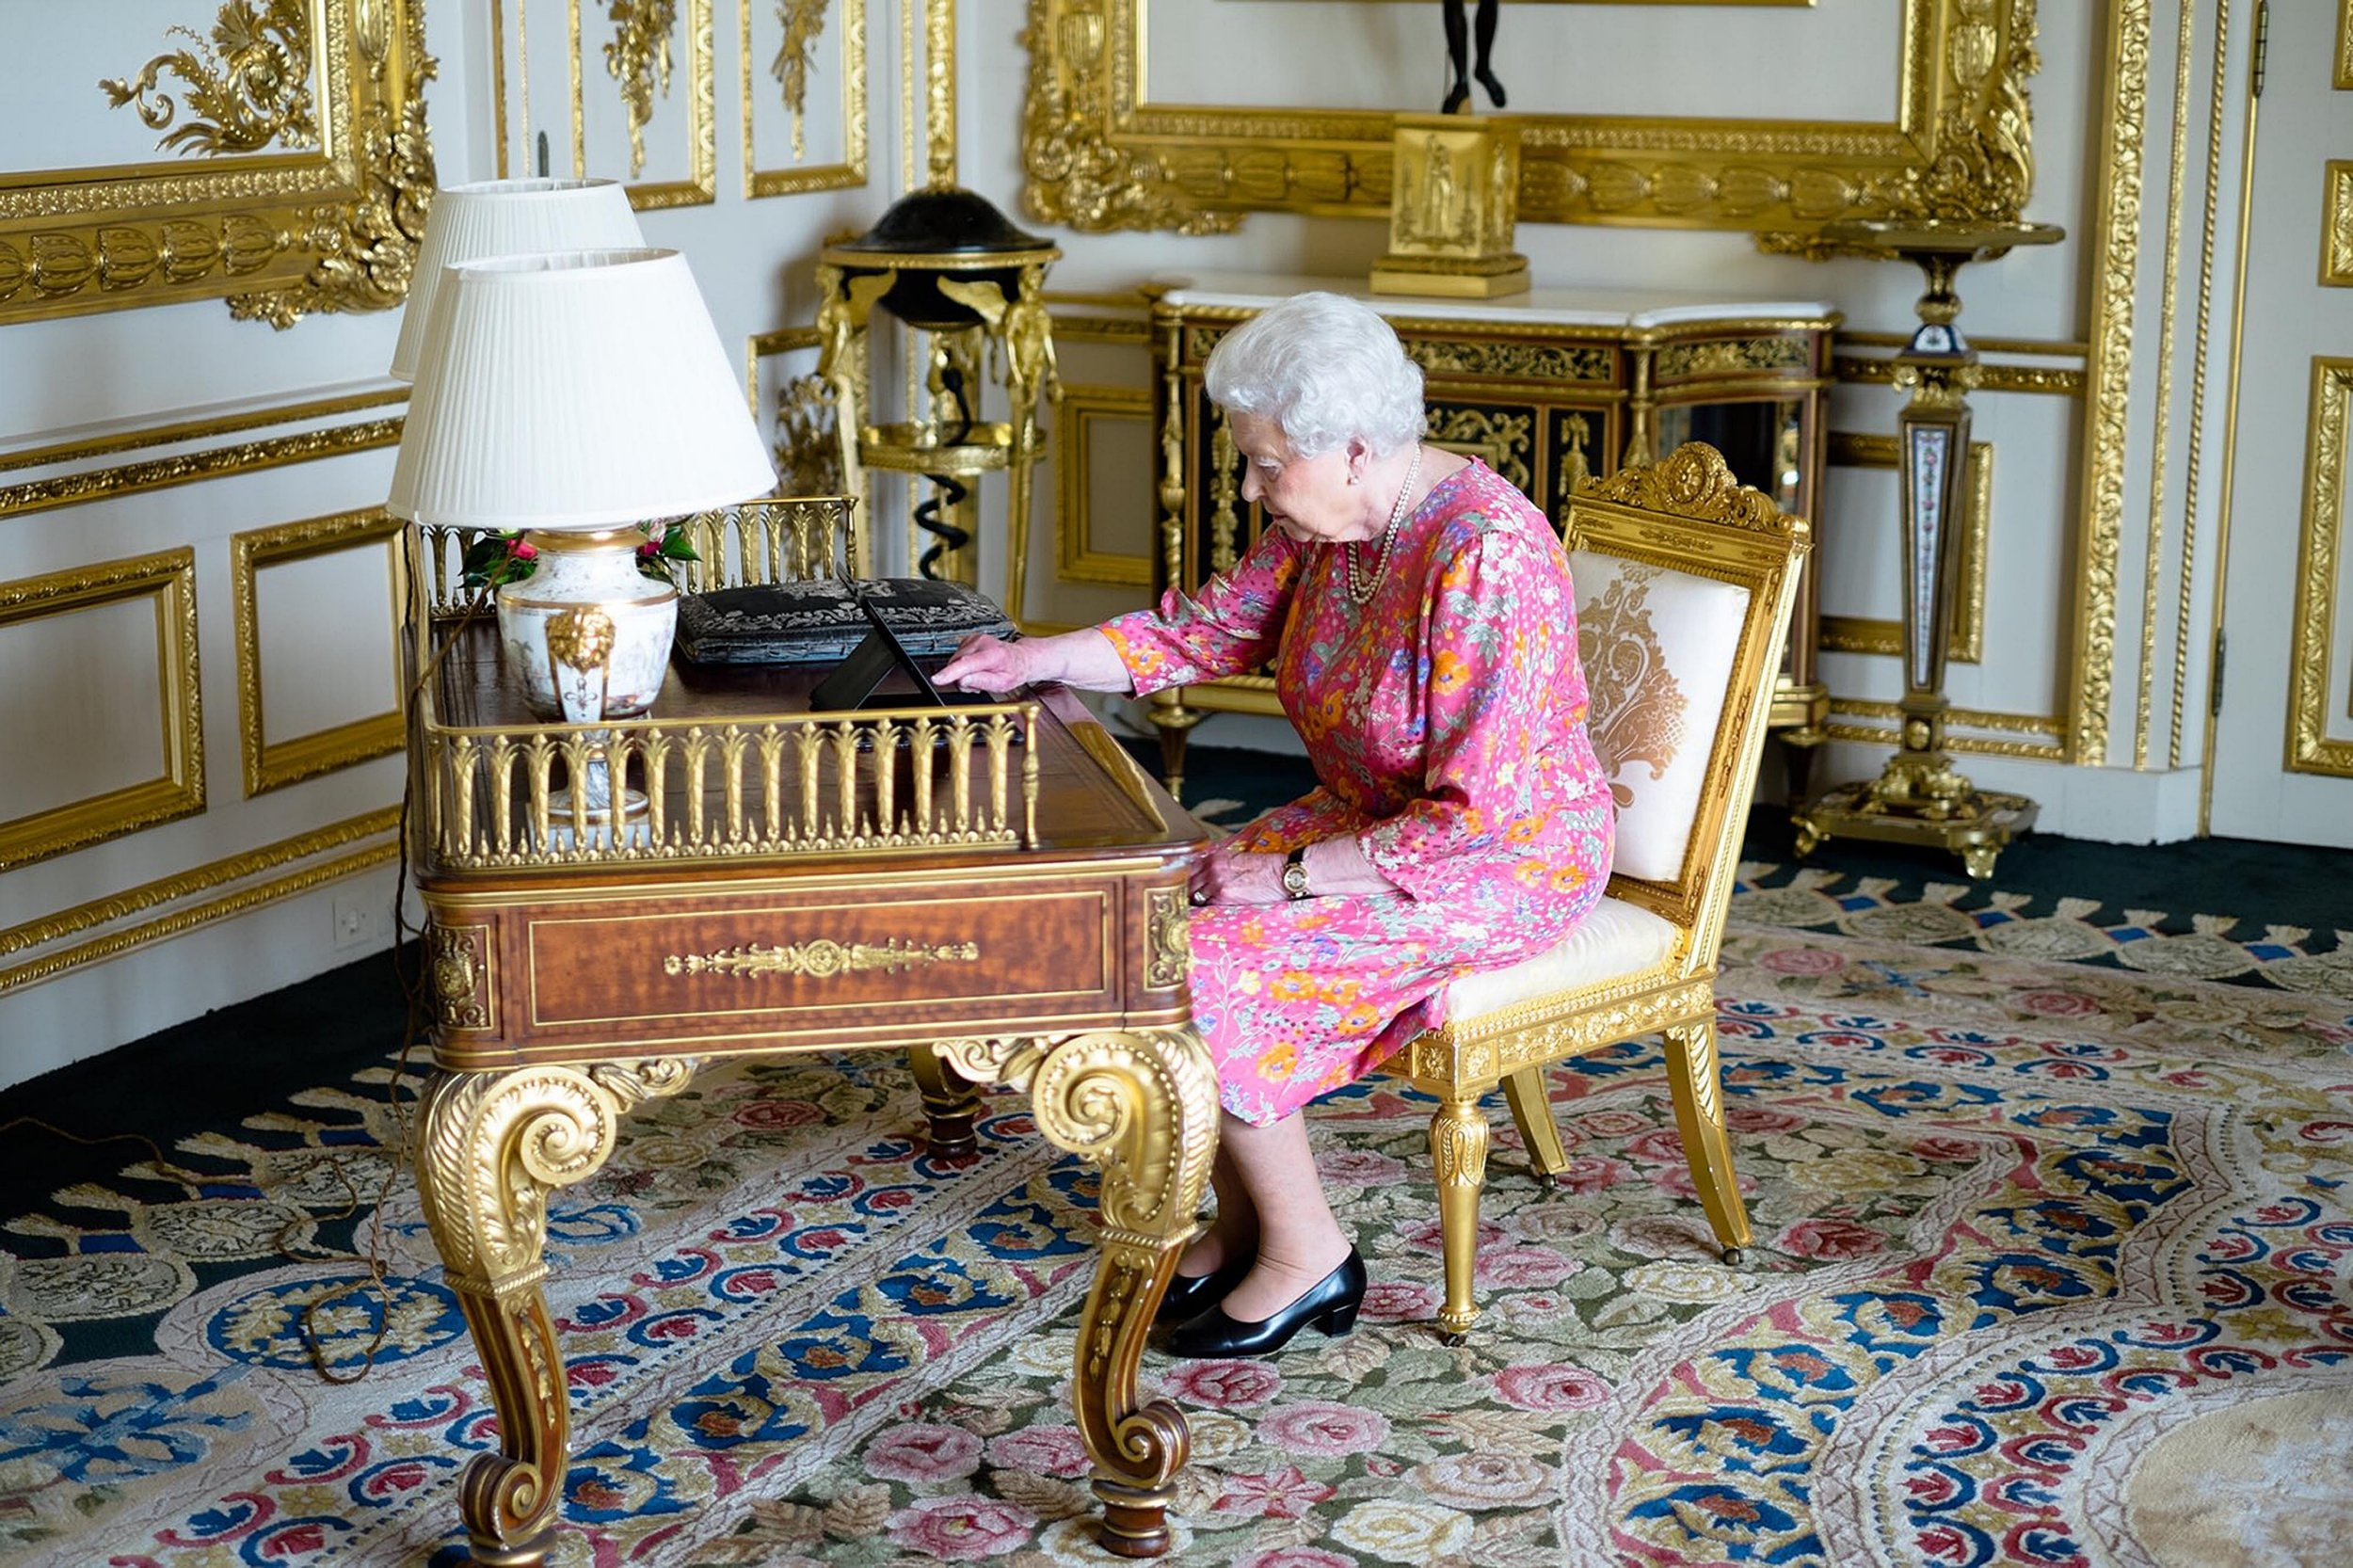 RETRANSMISSION ADDING LOCATION Handout photo issued by Buckingham Palace of Queen Elizabeth II tweeting on a tablet thanking everyone for their birthday messages from the White Drawing room at Windsor Castle. PRESS ASSOCIATION Photo. Picture date: Tuesday June 21, 2016. See PA story ROYAL Queen. Photo credit should read: Buckingham Palace/PA Wire NOTE TO EDITORS: This handout photo may only be used in for editorial reporting purposes for the contemporaneous illustration of events, things or the people in the image or facts mentioned in the caption. Reuse of the picture may require further permission from the copyright holder.